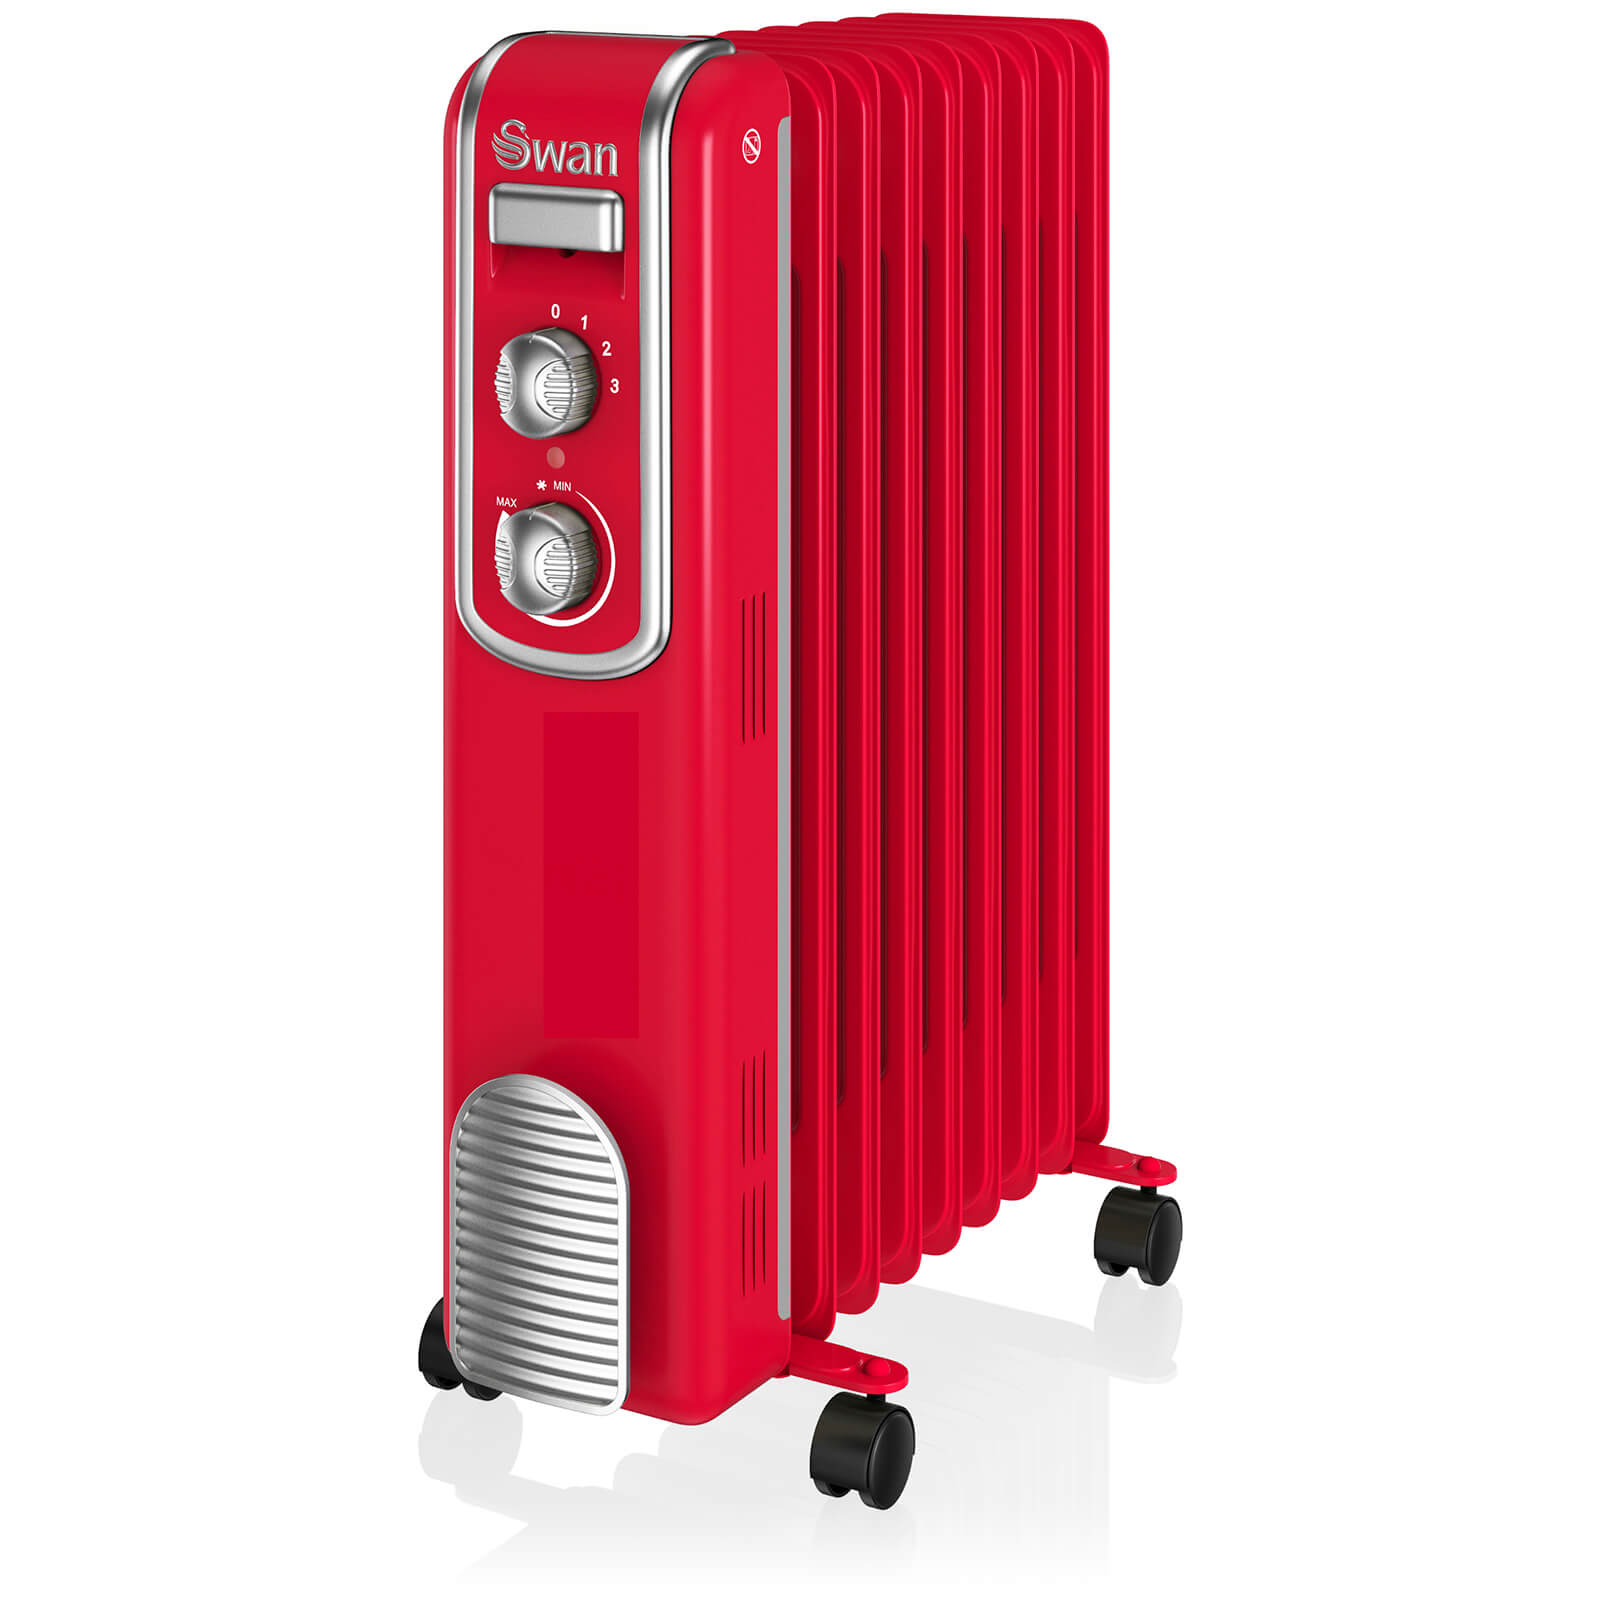 Swan SH60010RN 9 Finned Oil Filled Radiator - Red